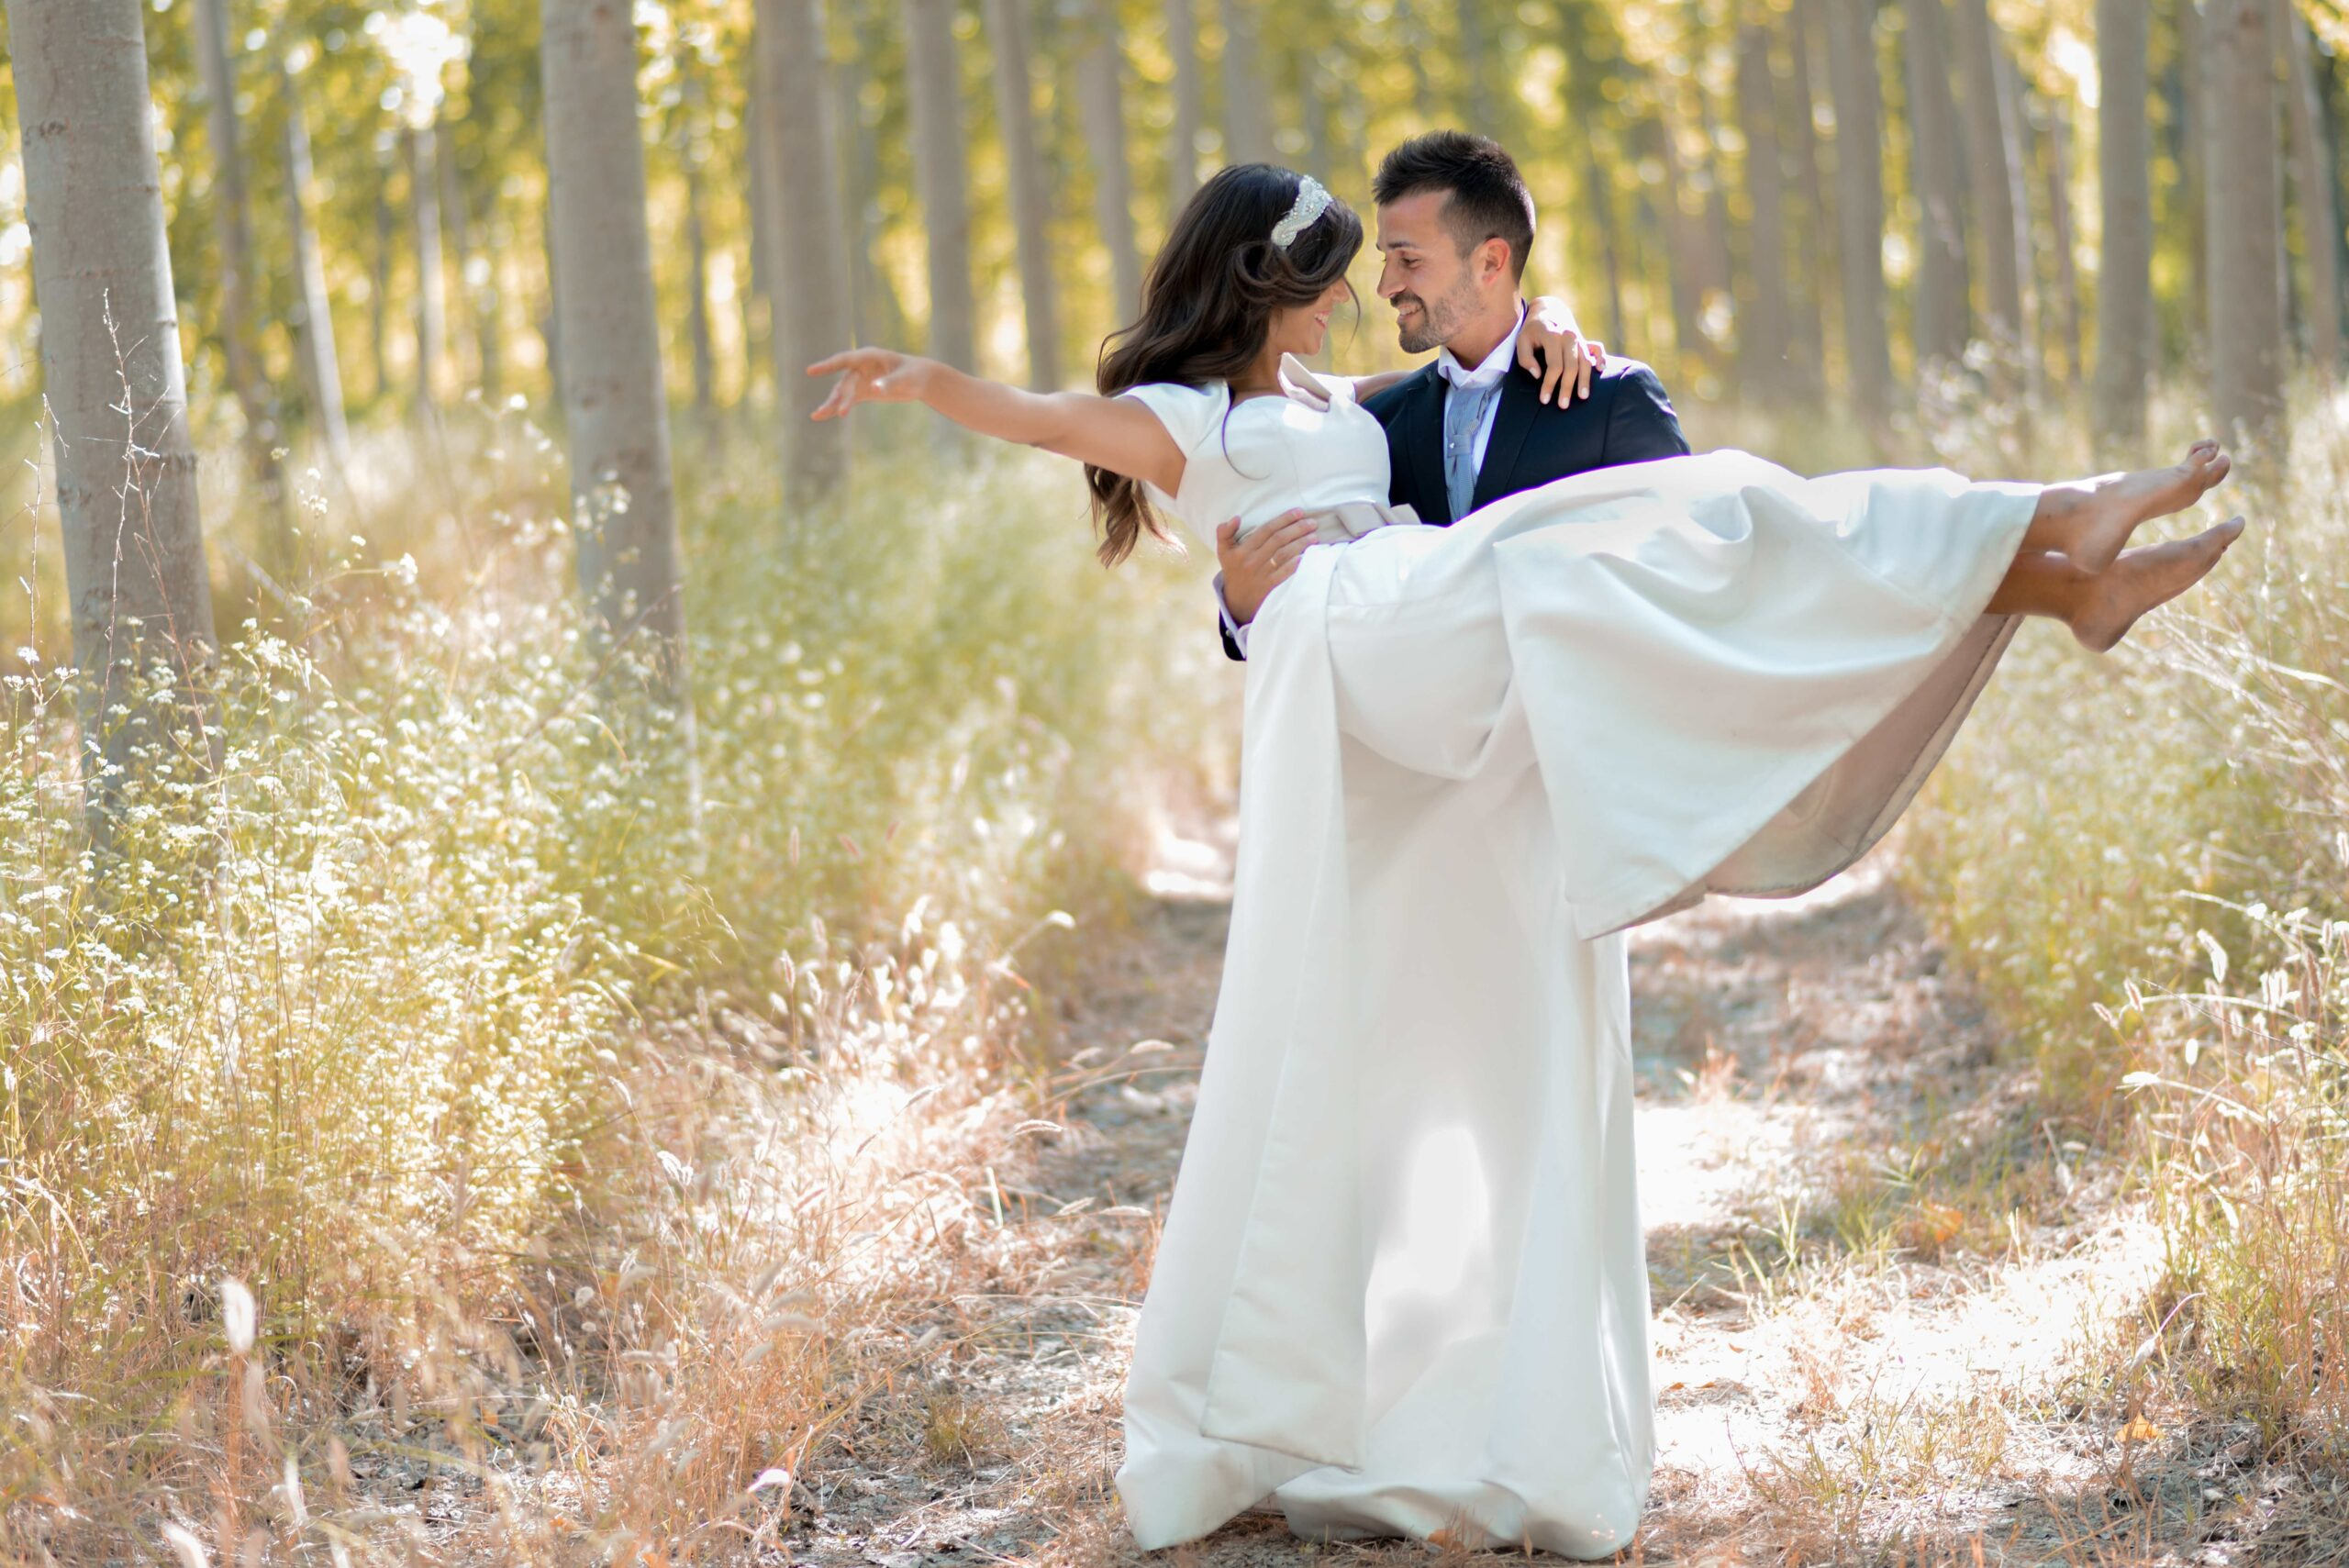 Marriage And Ssd Benefits Attorney Ssd Chicago